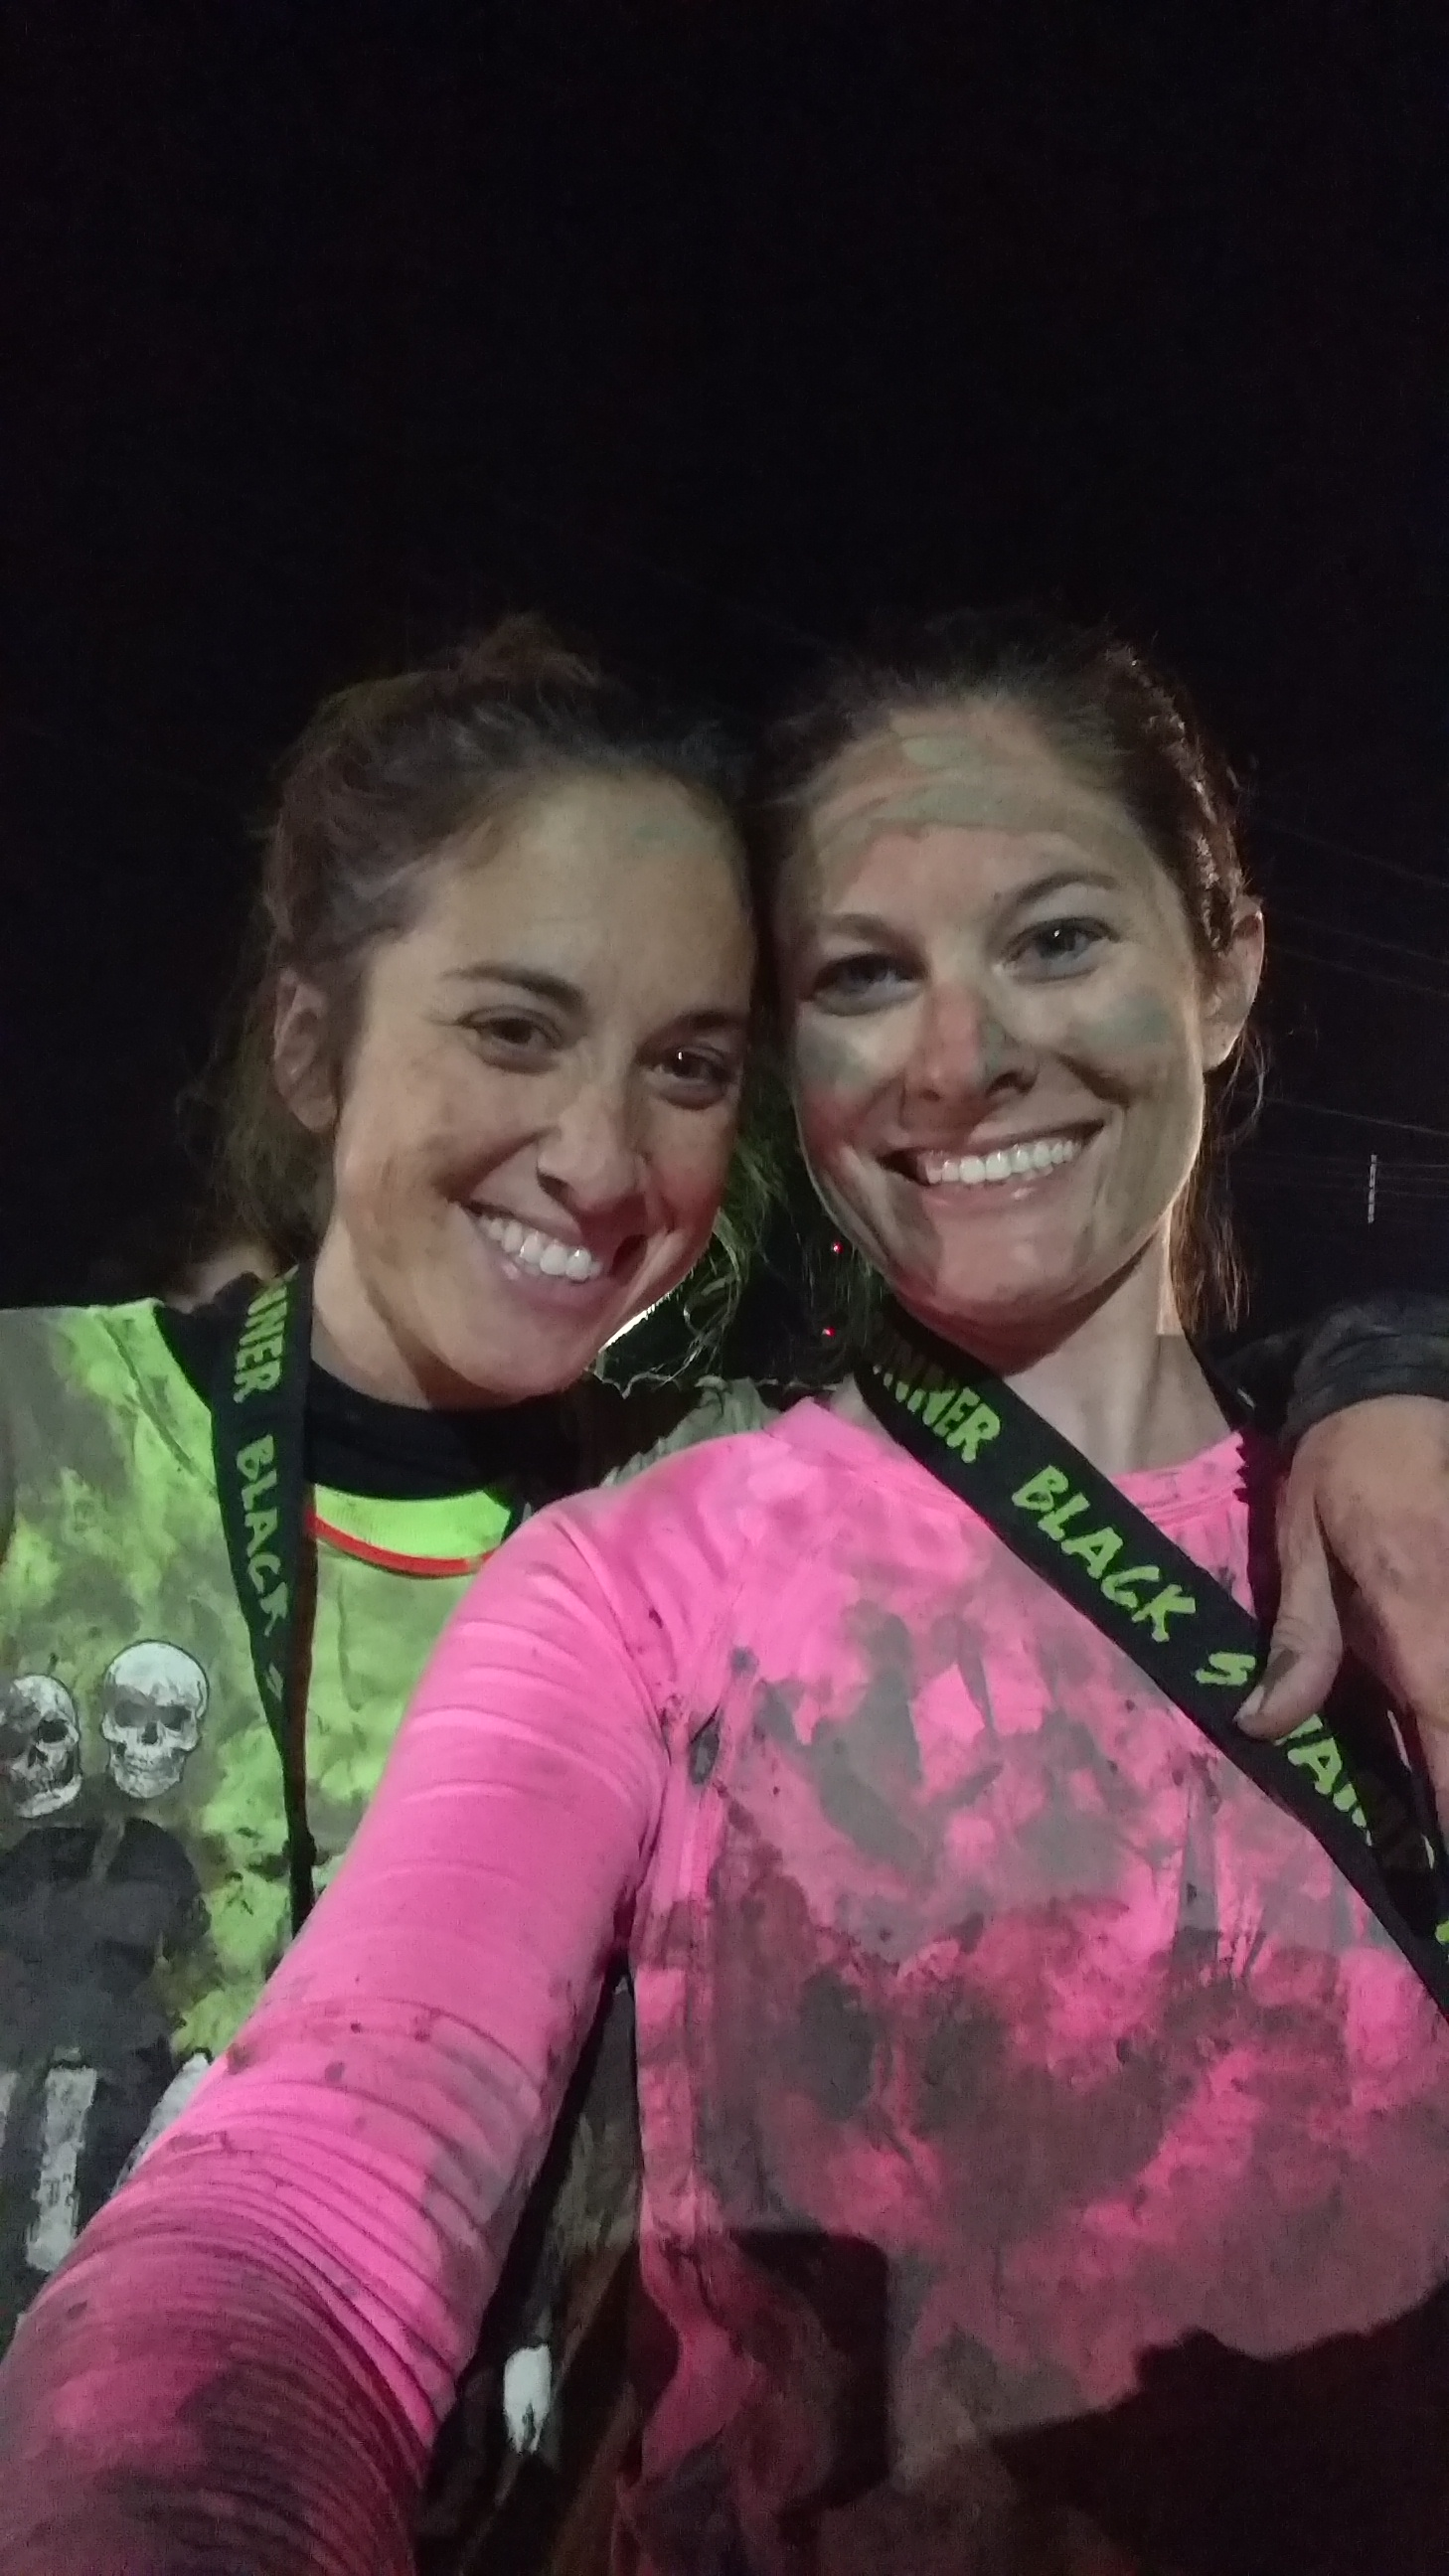 @starbee @rocketear99 Here's before, after, and medal pics! The two are Jennifer and Lauren. J